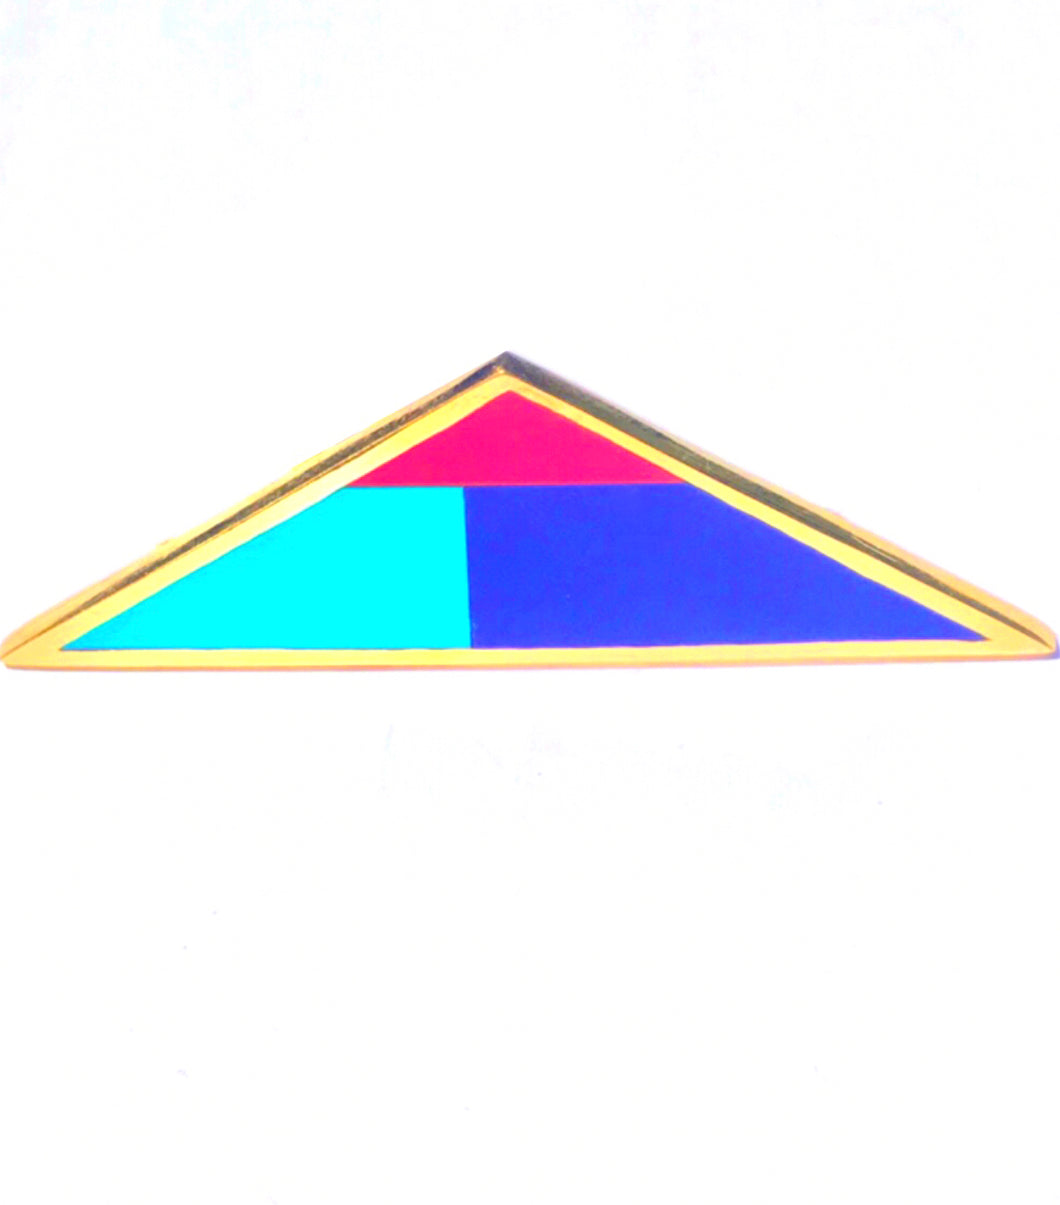 Light Pyramid